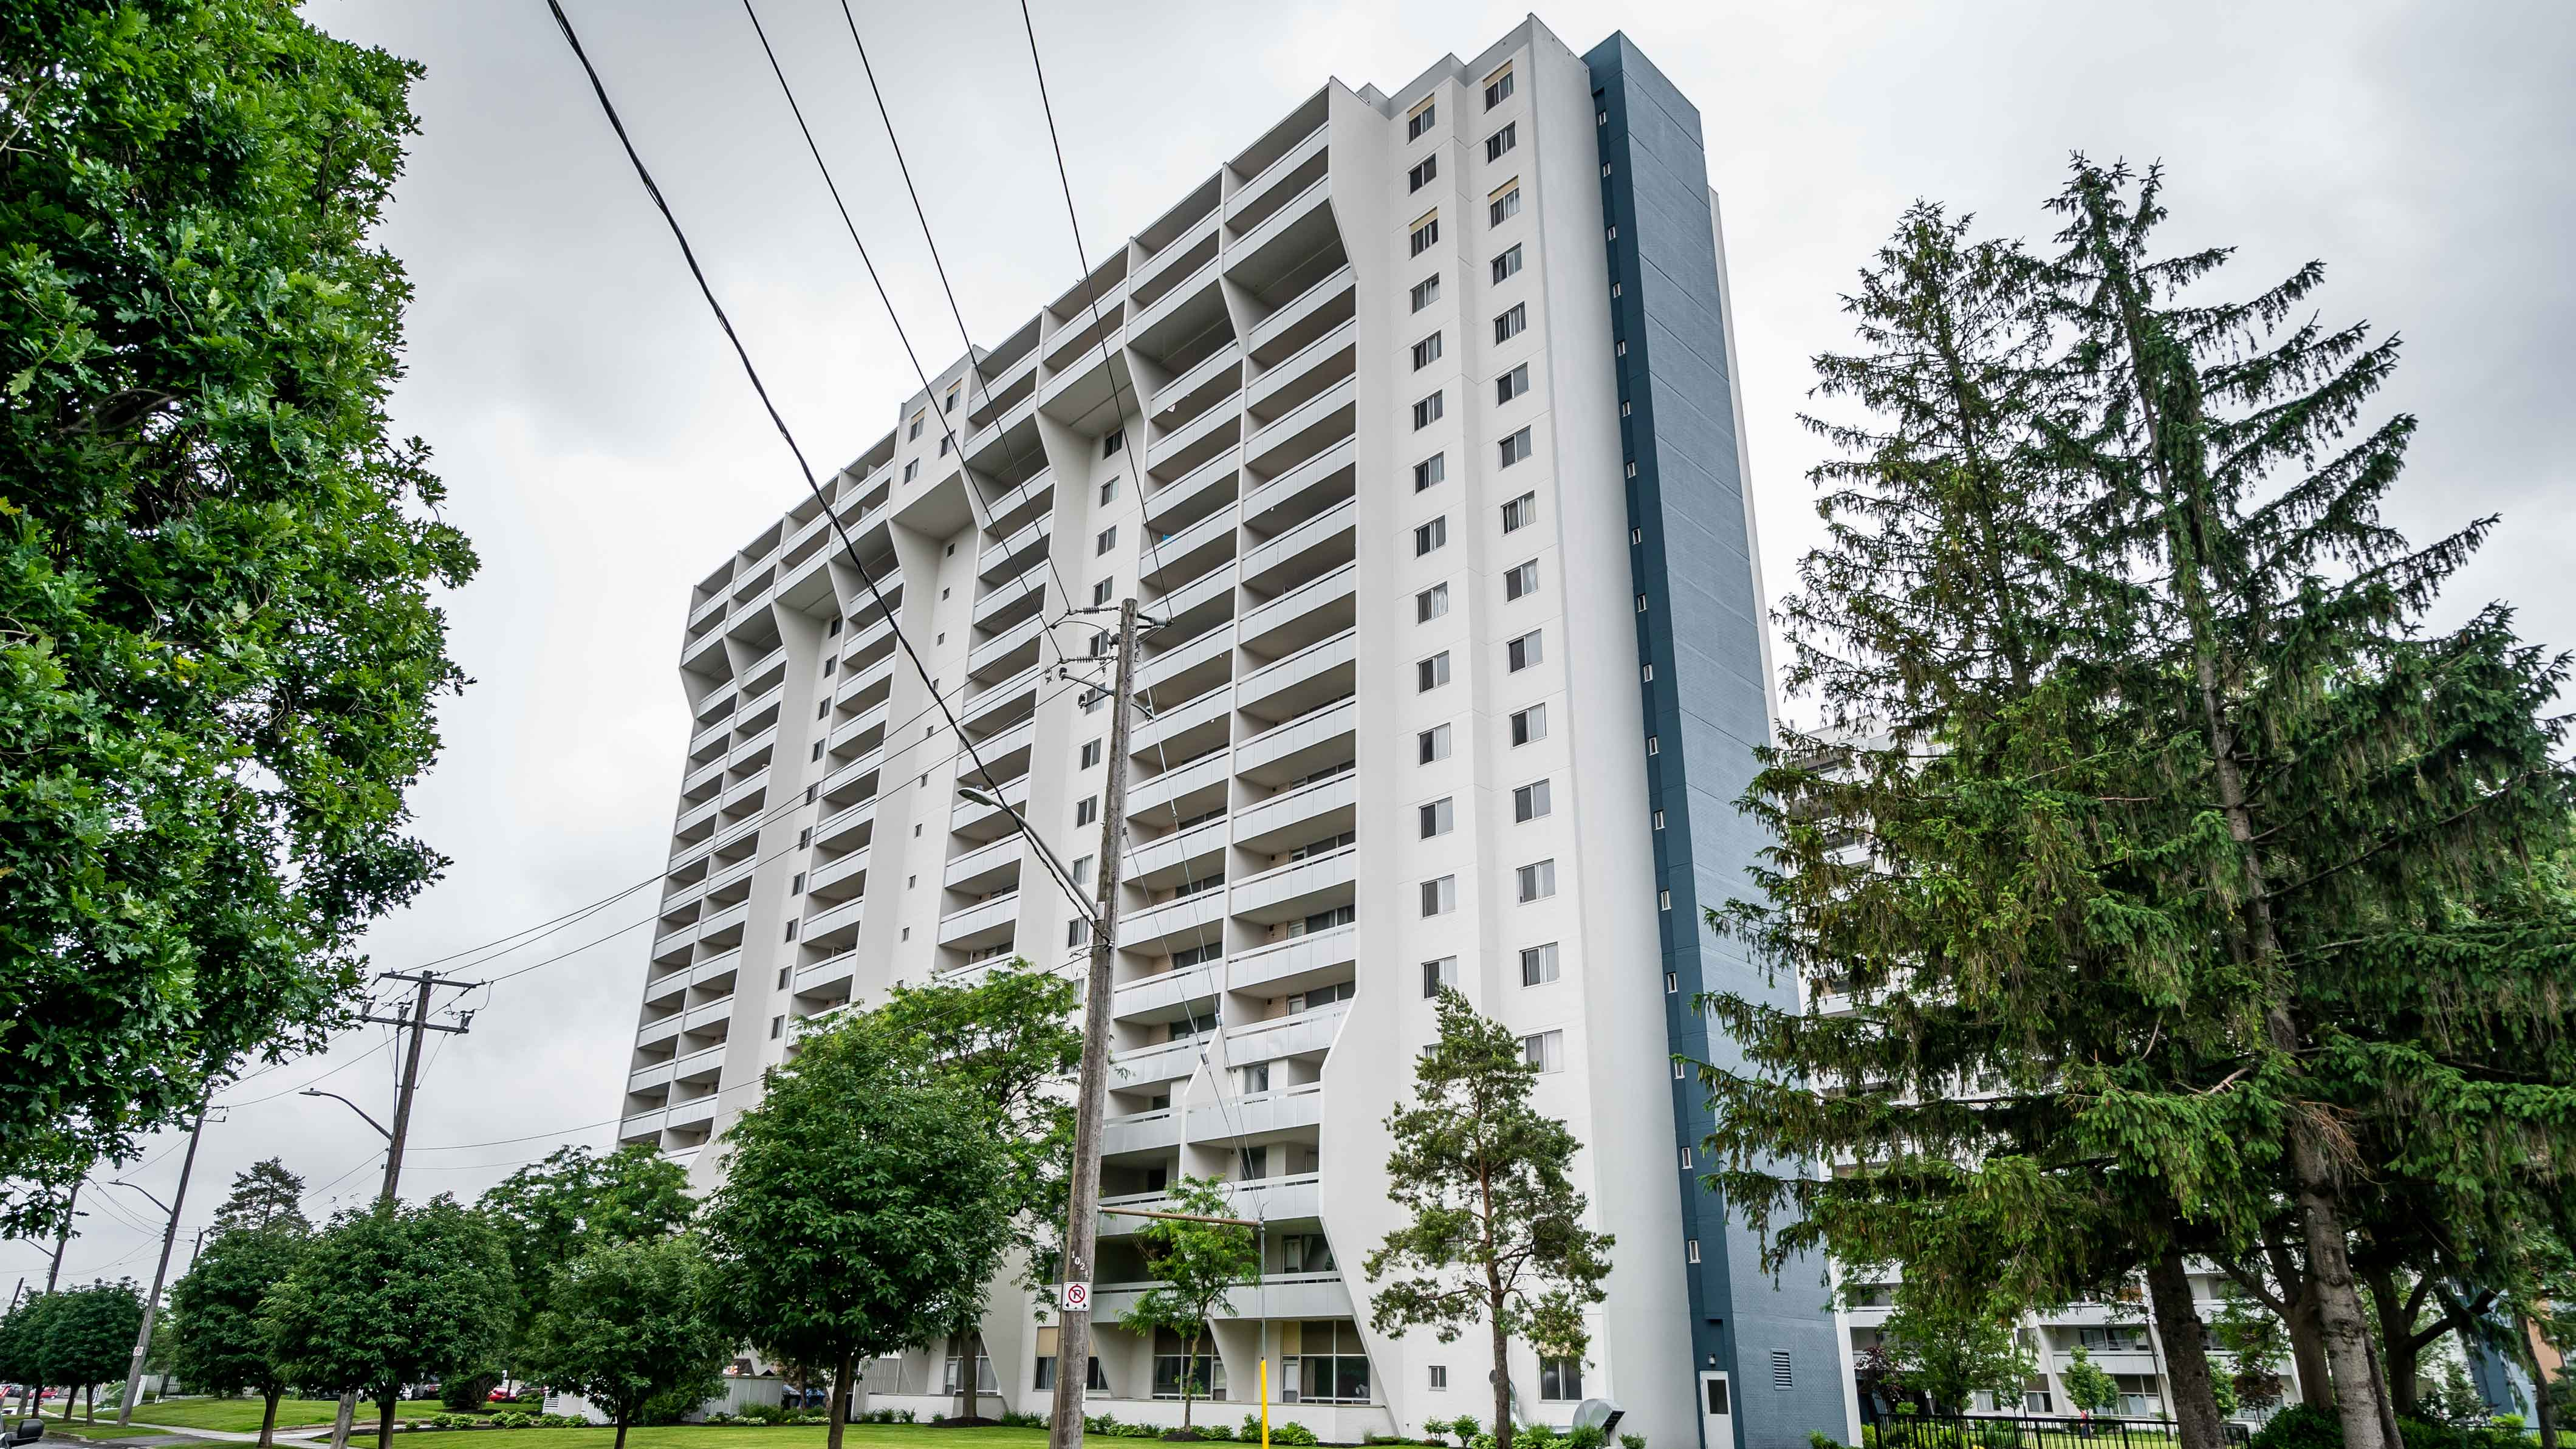 Exterior side of residential building